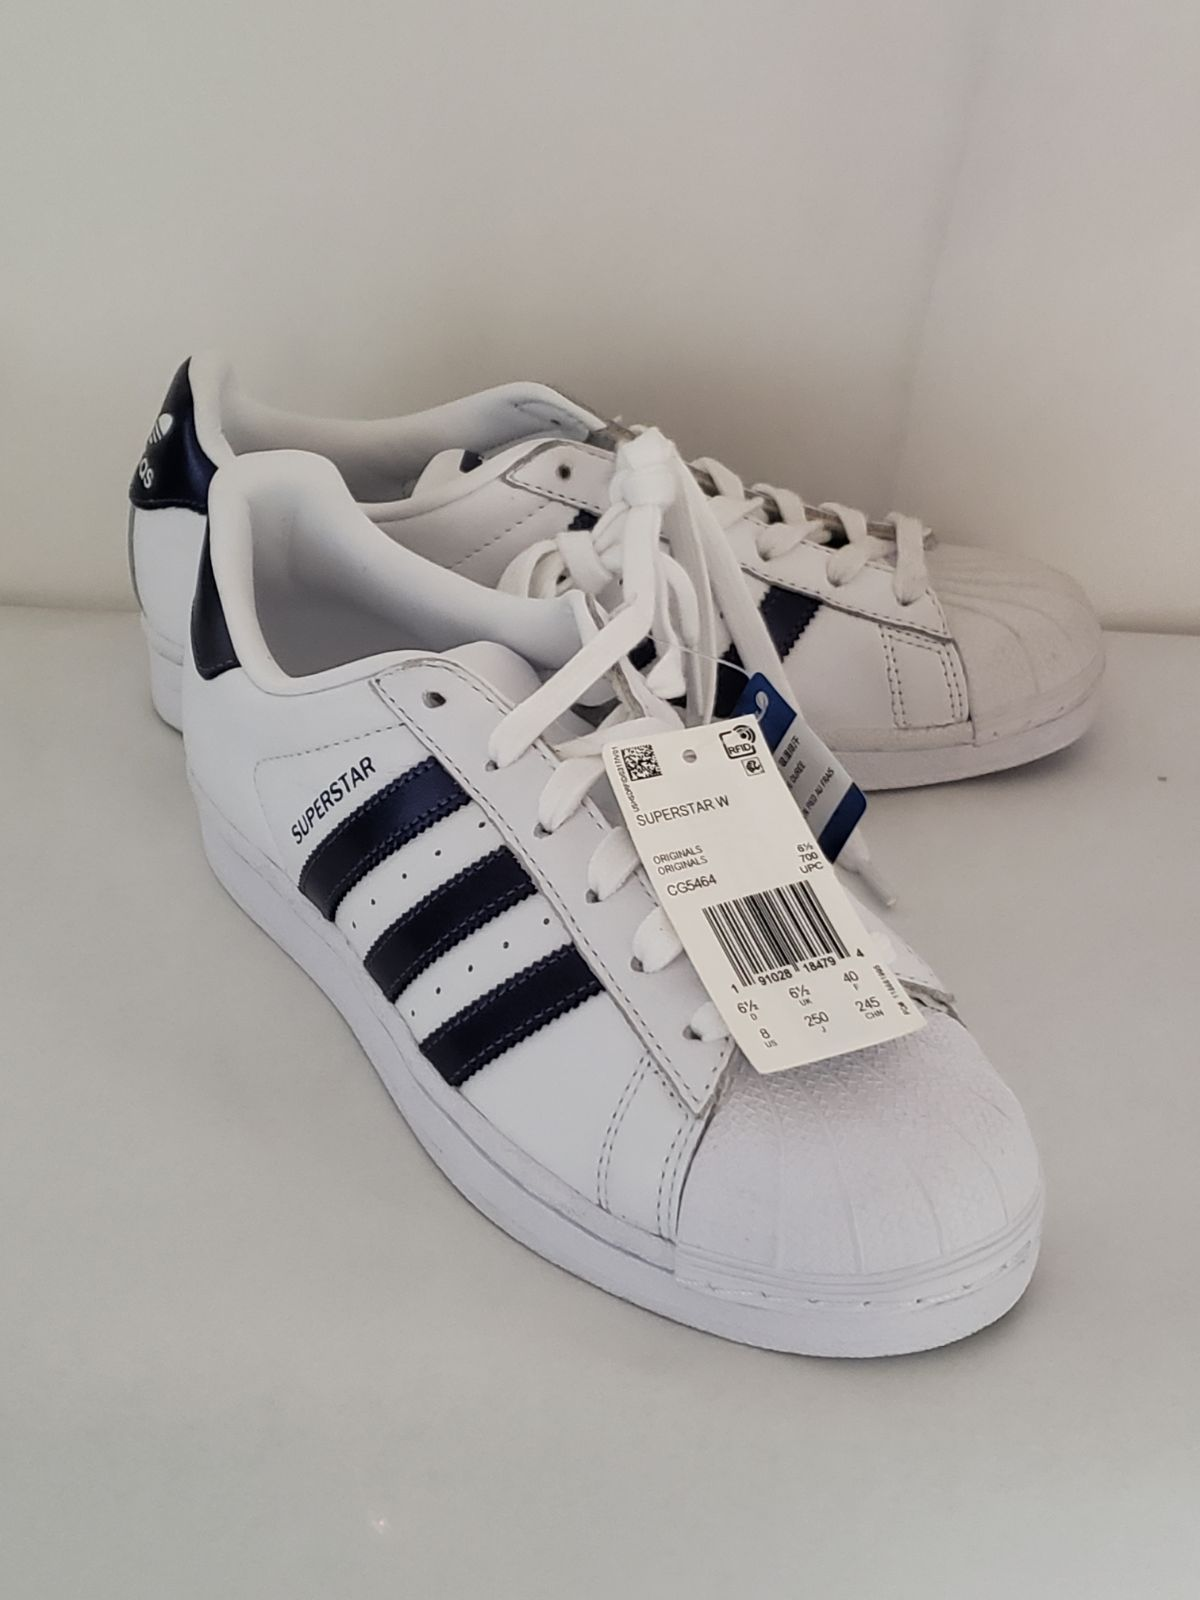 Shoes Contain No Retail Box Shoes Come With Tags Adidas Fashion Sneakers Adidas Fashion Sneakers Fashion